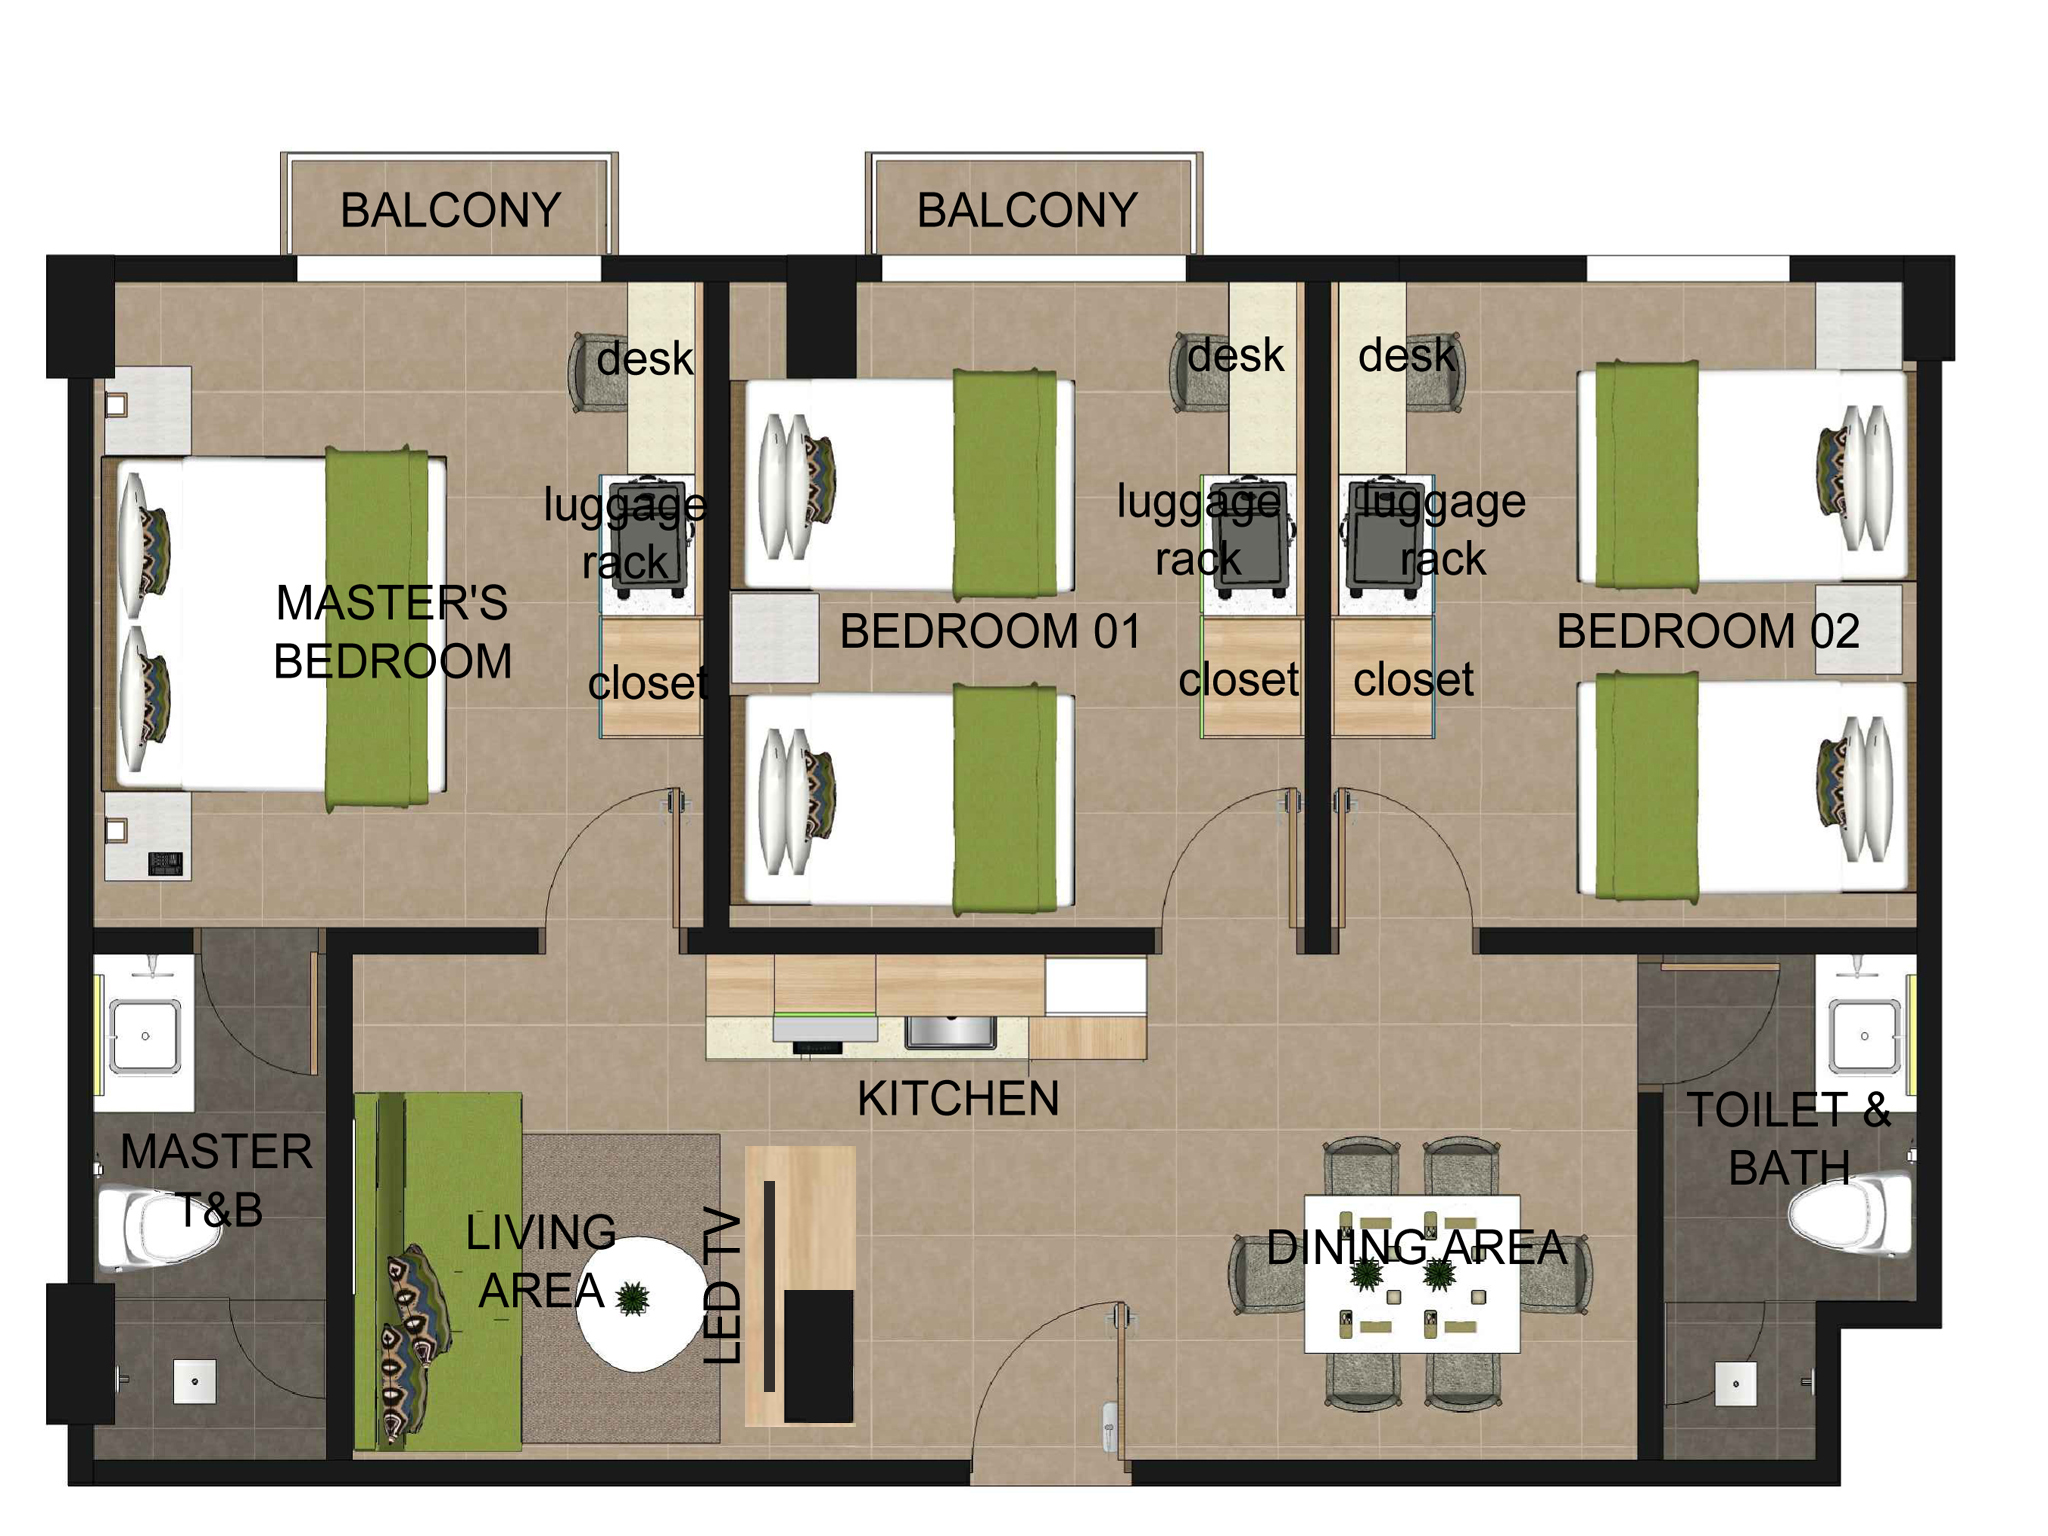 3 bedroom floor plans 3 bedroom floor plans monmouth Floor plan of a 3 bedroom house